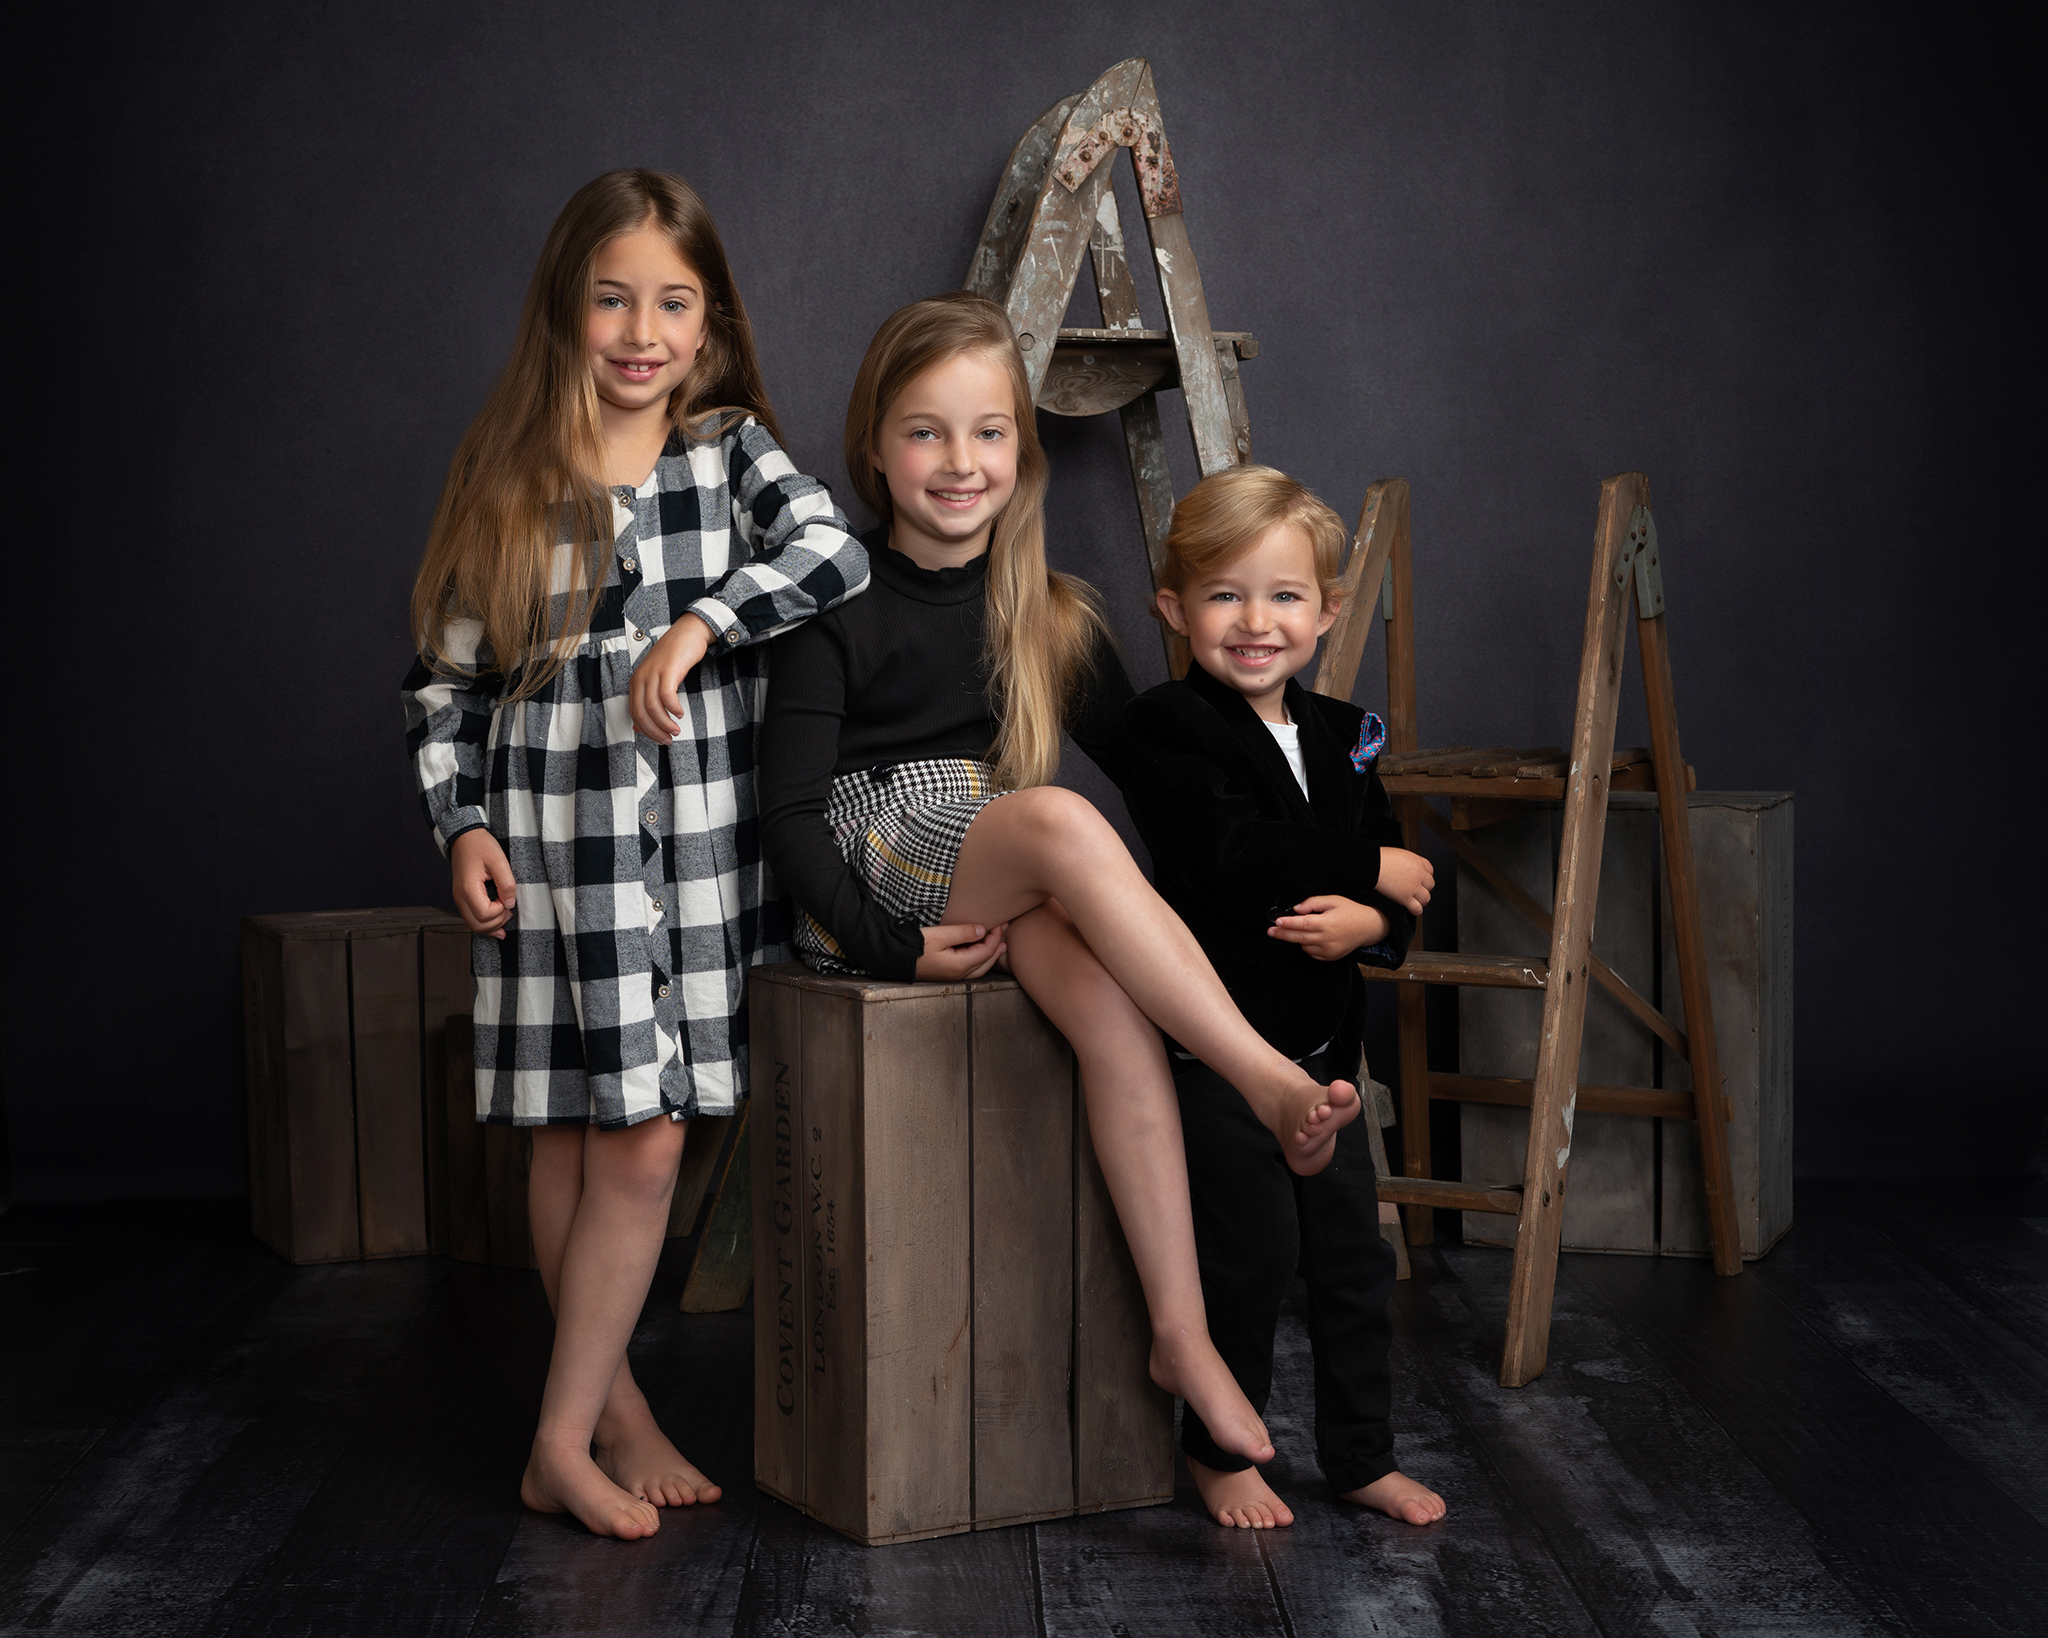 three children studio portrait by Family photographer Lancashire